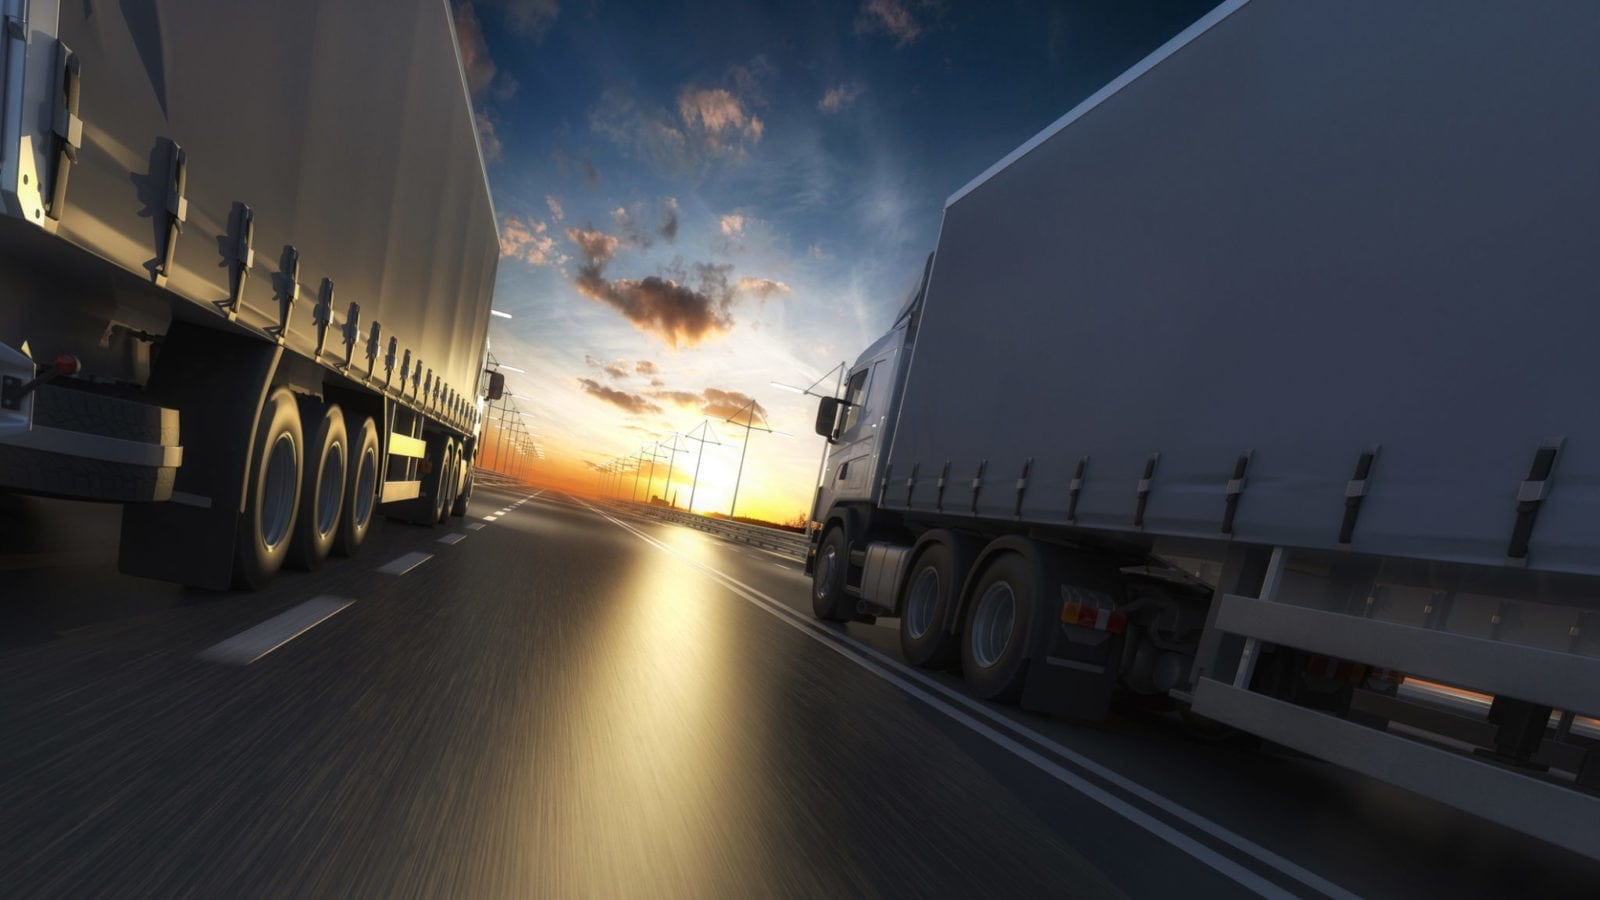 18-wheeler Trucks Driving On The Highway Stock Photo